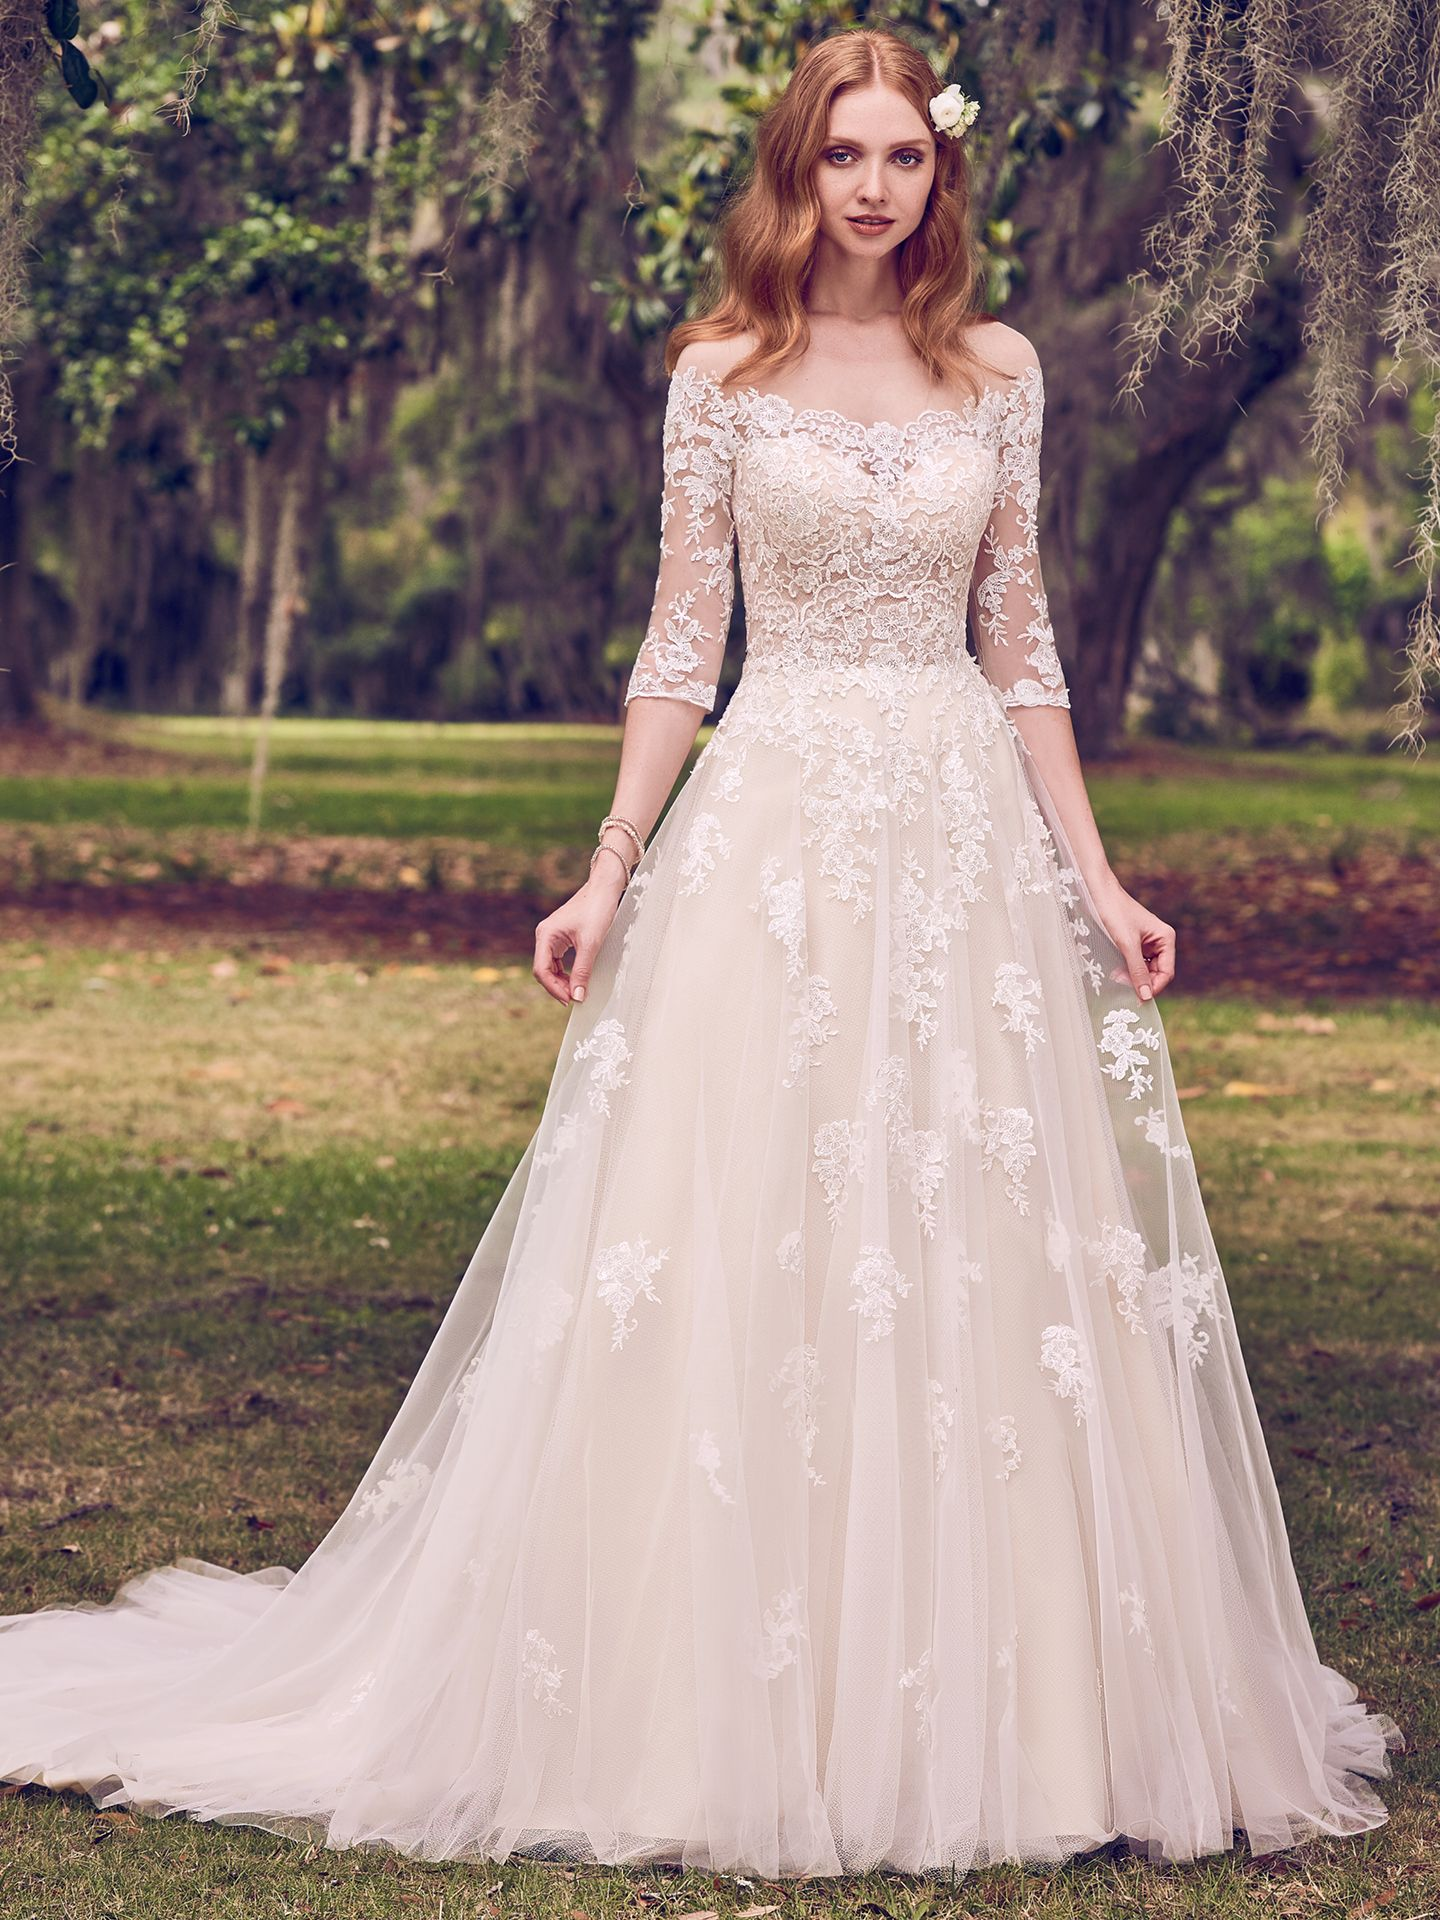 6 Best Wedding Dresses For A Rustic Bree Dress By Maggie Sottero